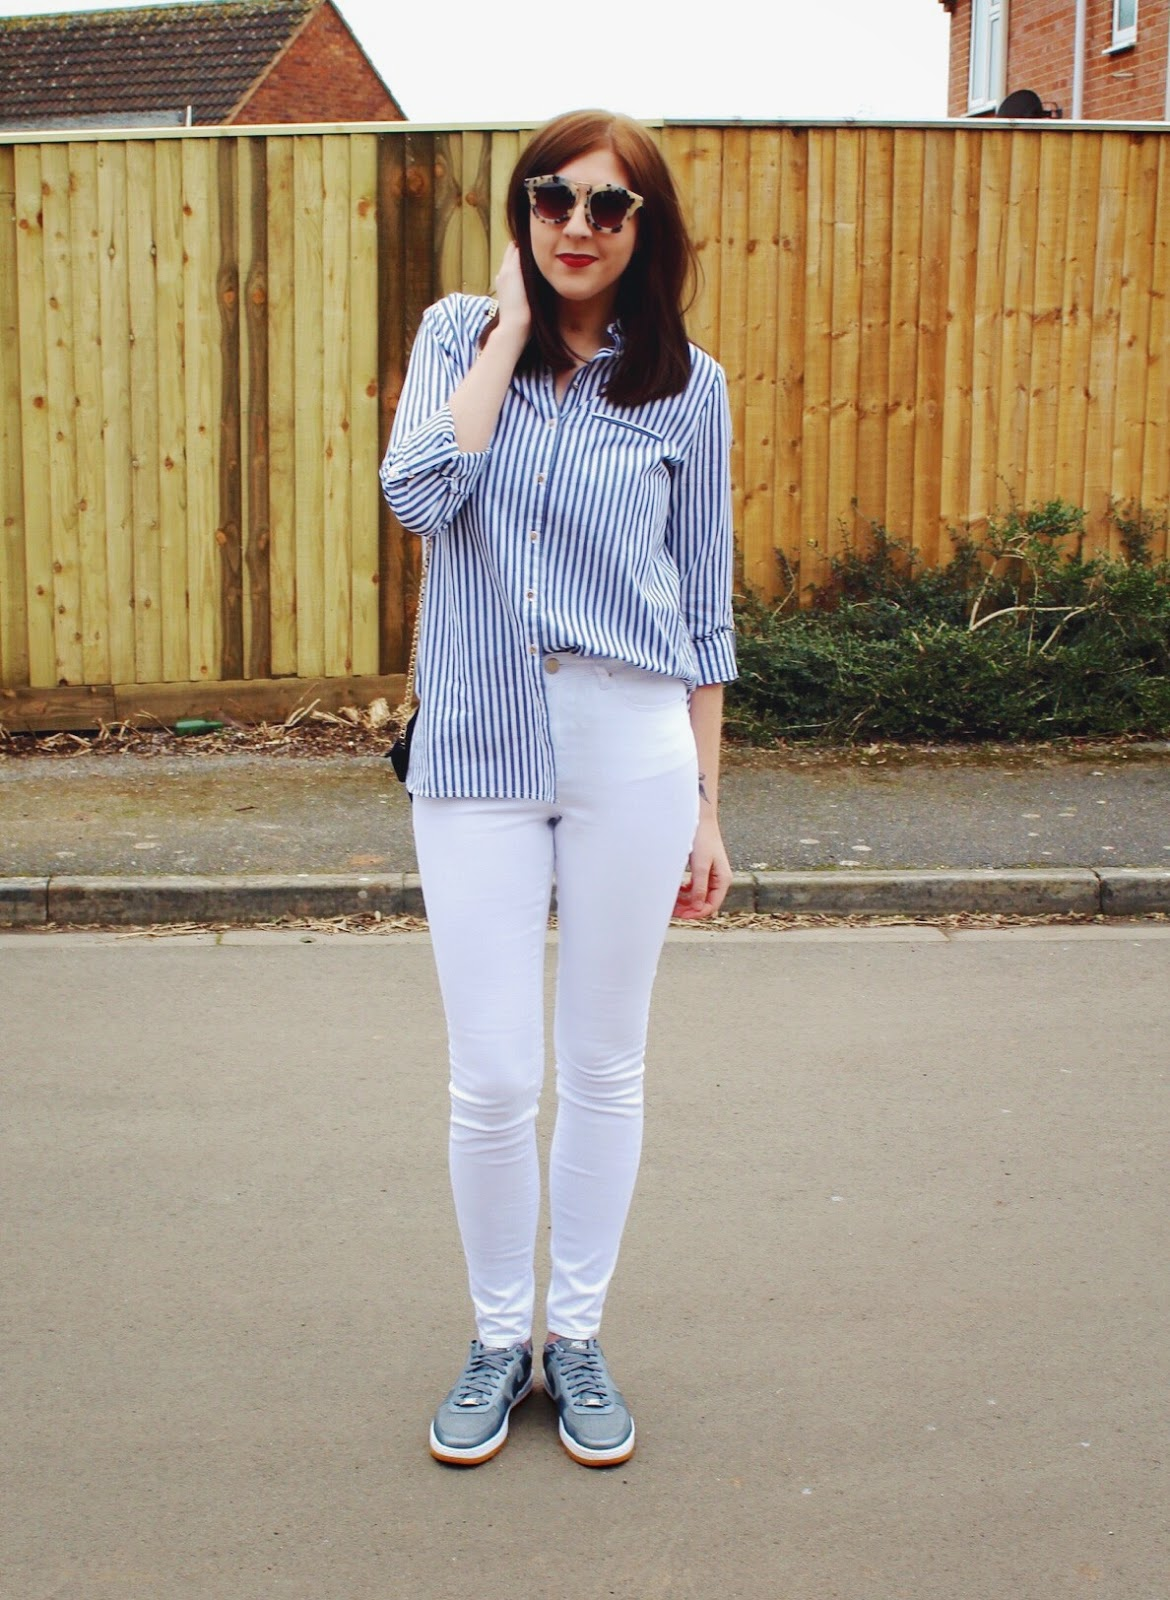 fbloggers, fblogger, ootd, outfitoftheday, lotd, lookoftheday, wiw, whatimwearing, asseenonme, fashion, fashionbloggers, fashionblogger, stripedshirt, springfashion, nike, halcyonvelvet, asos, whitejeans, primark, riverisland